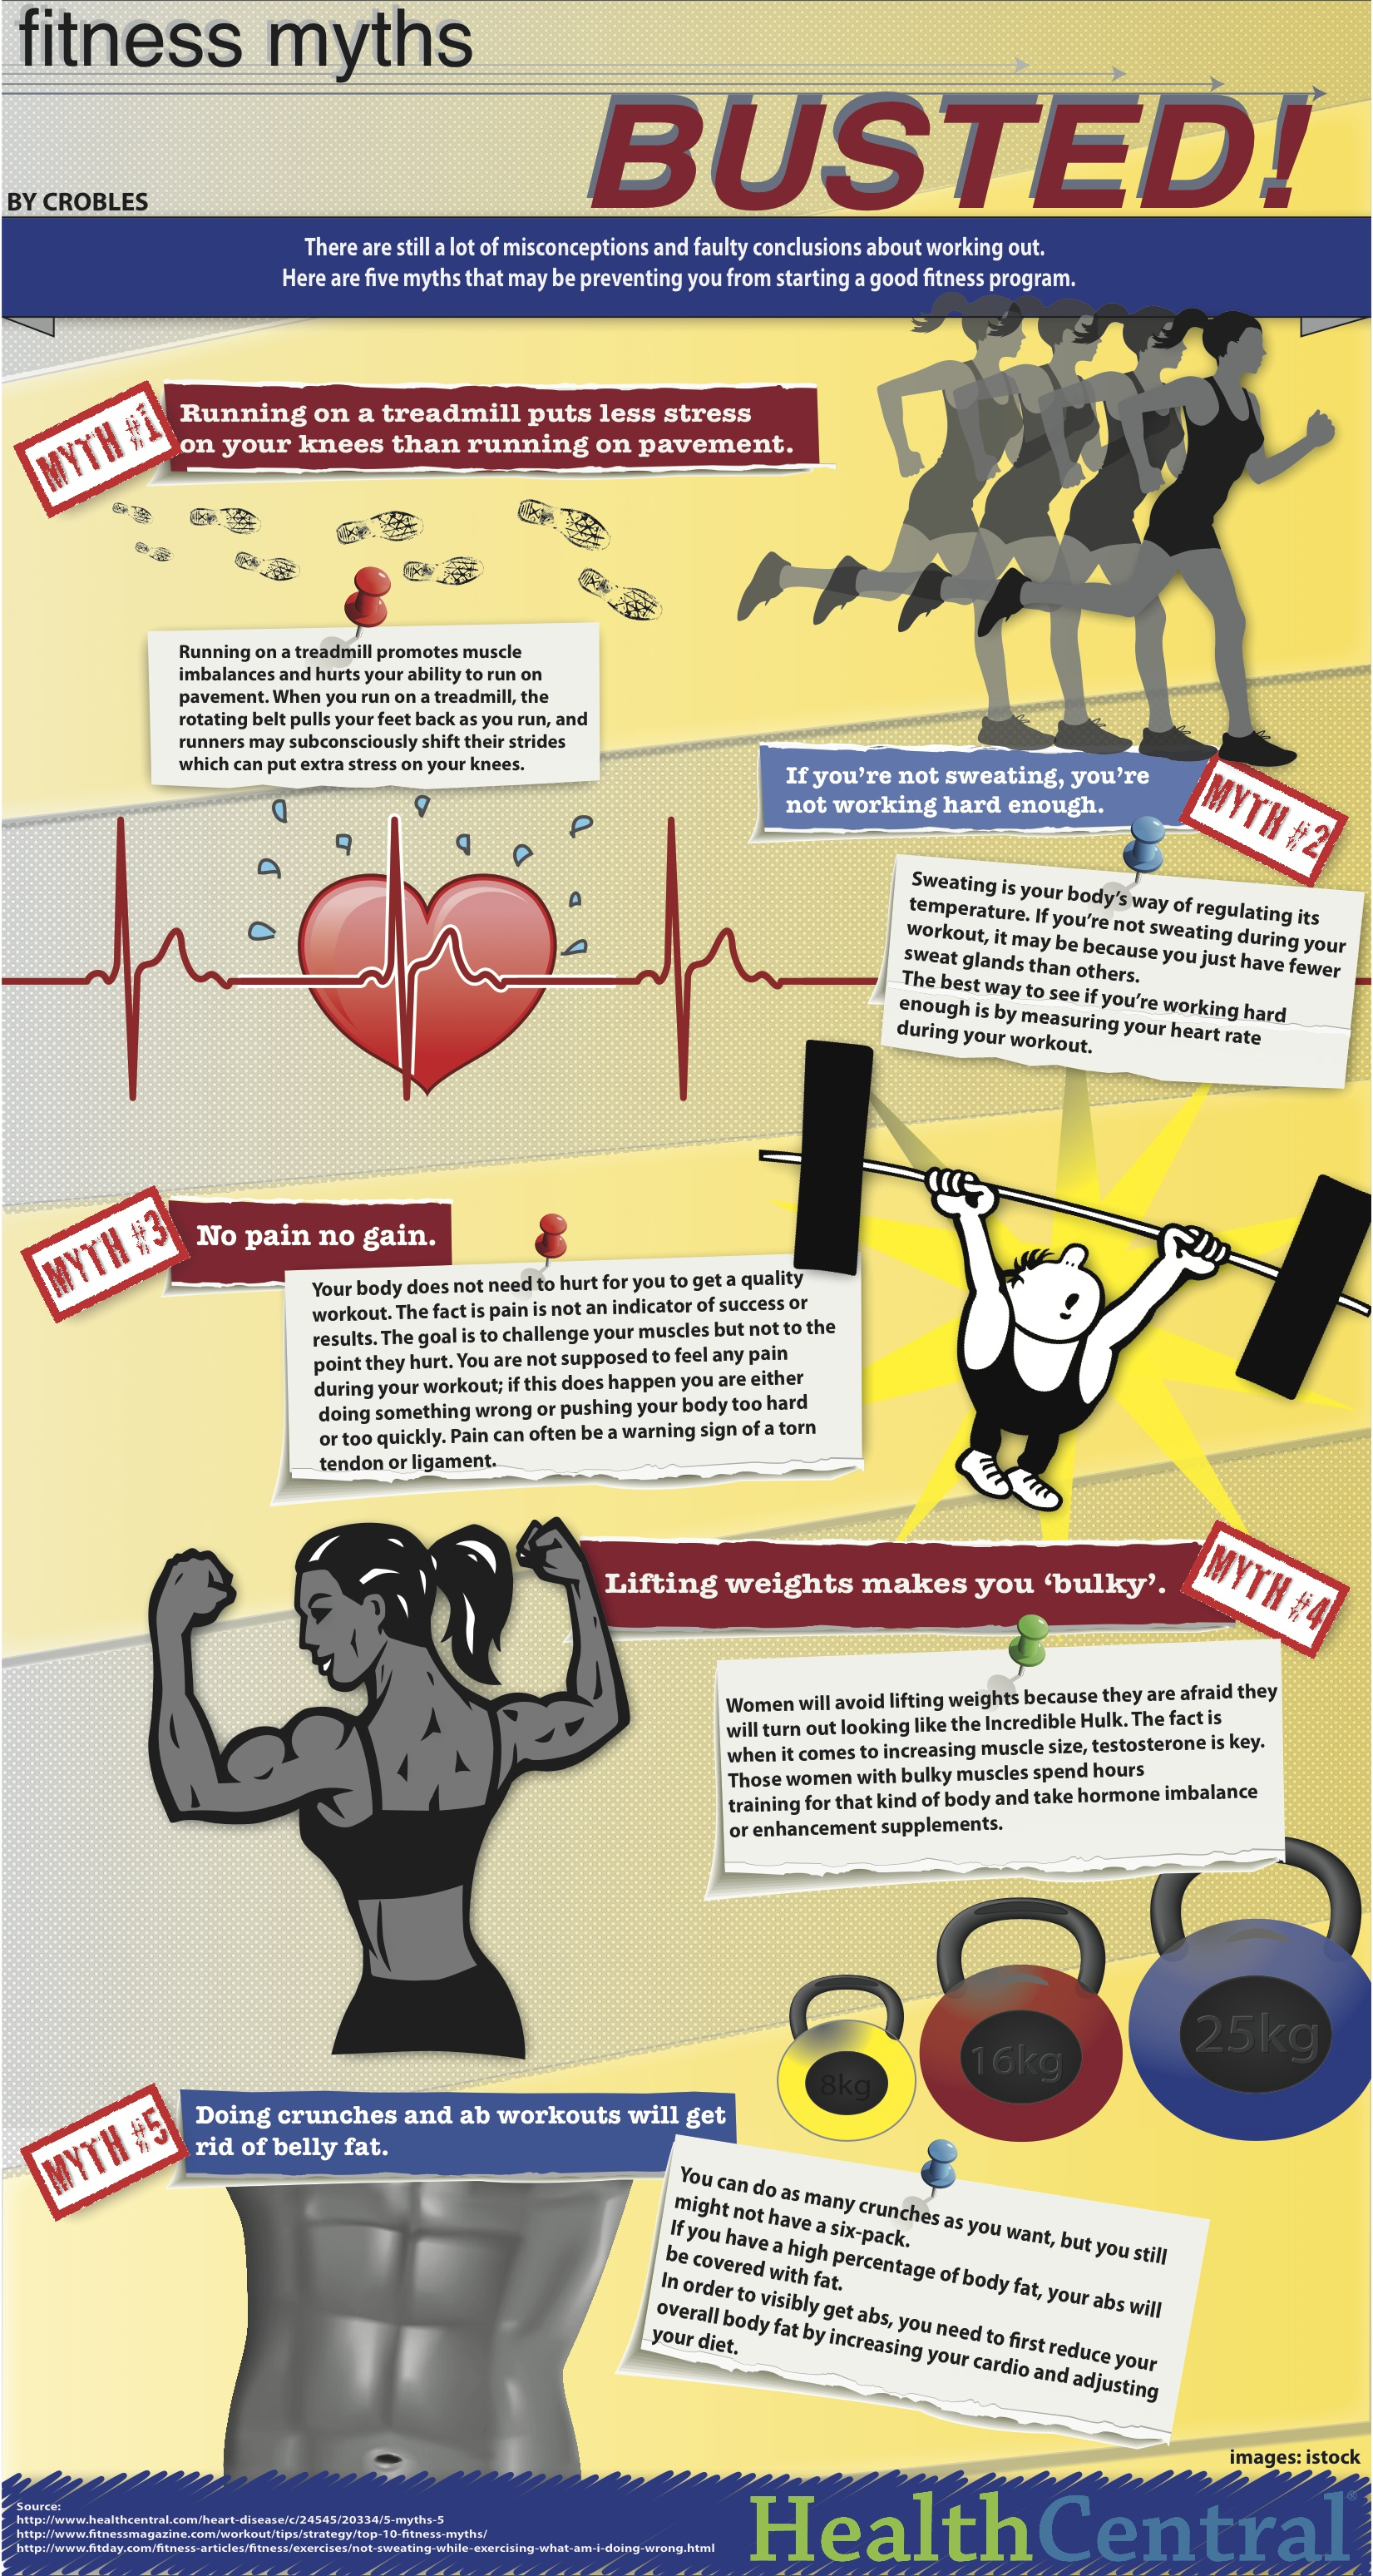 Fitness myths - Busted